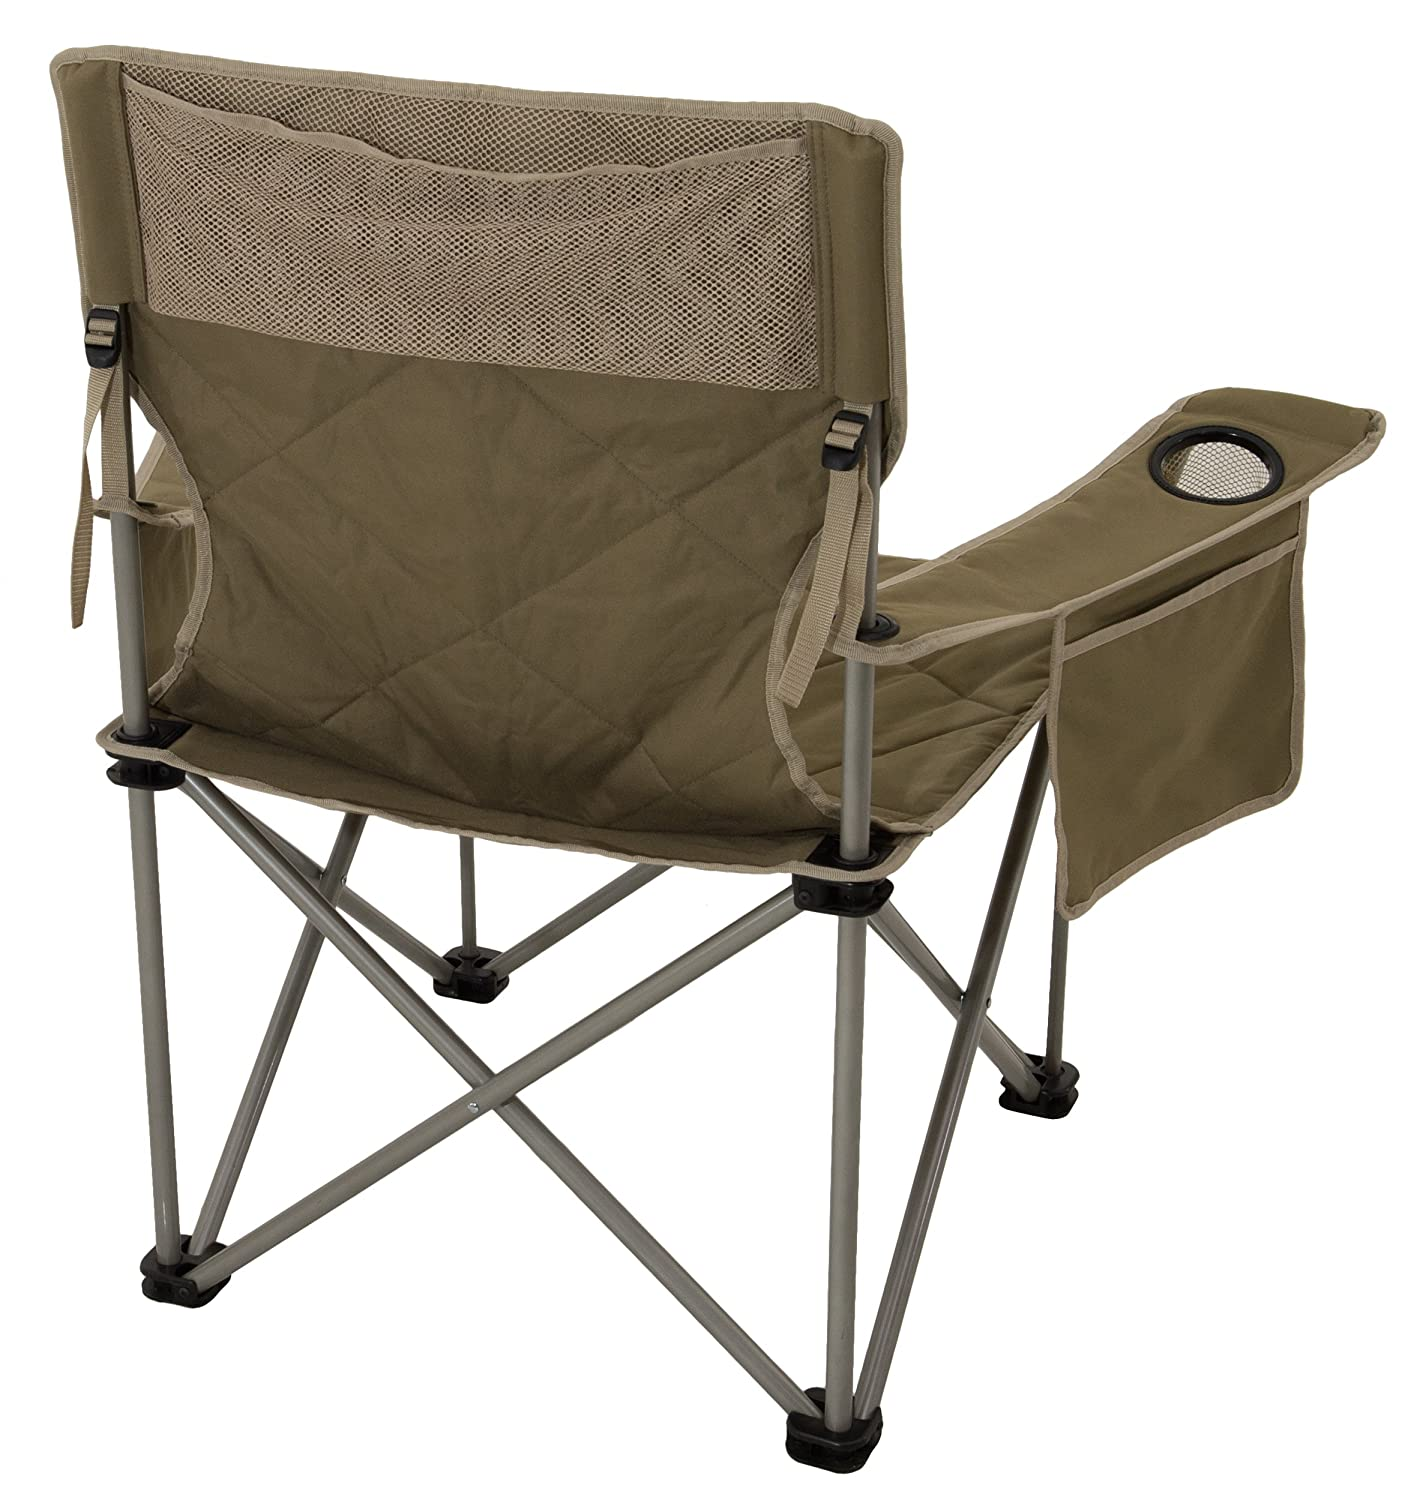 Camper Chairs Camping Chairs For Heavy People Up To 1000lbs Us And Uk